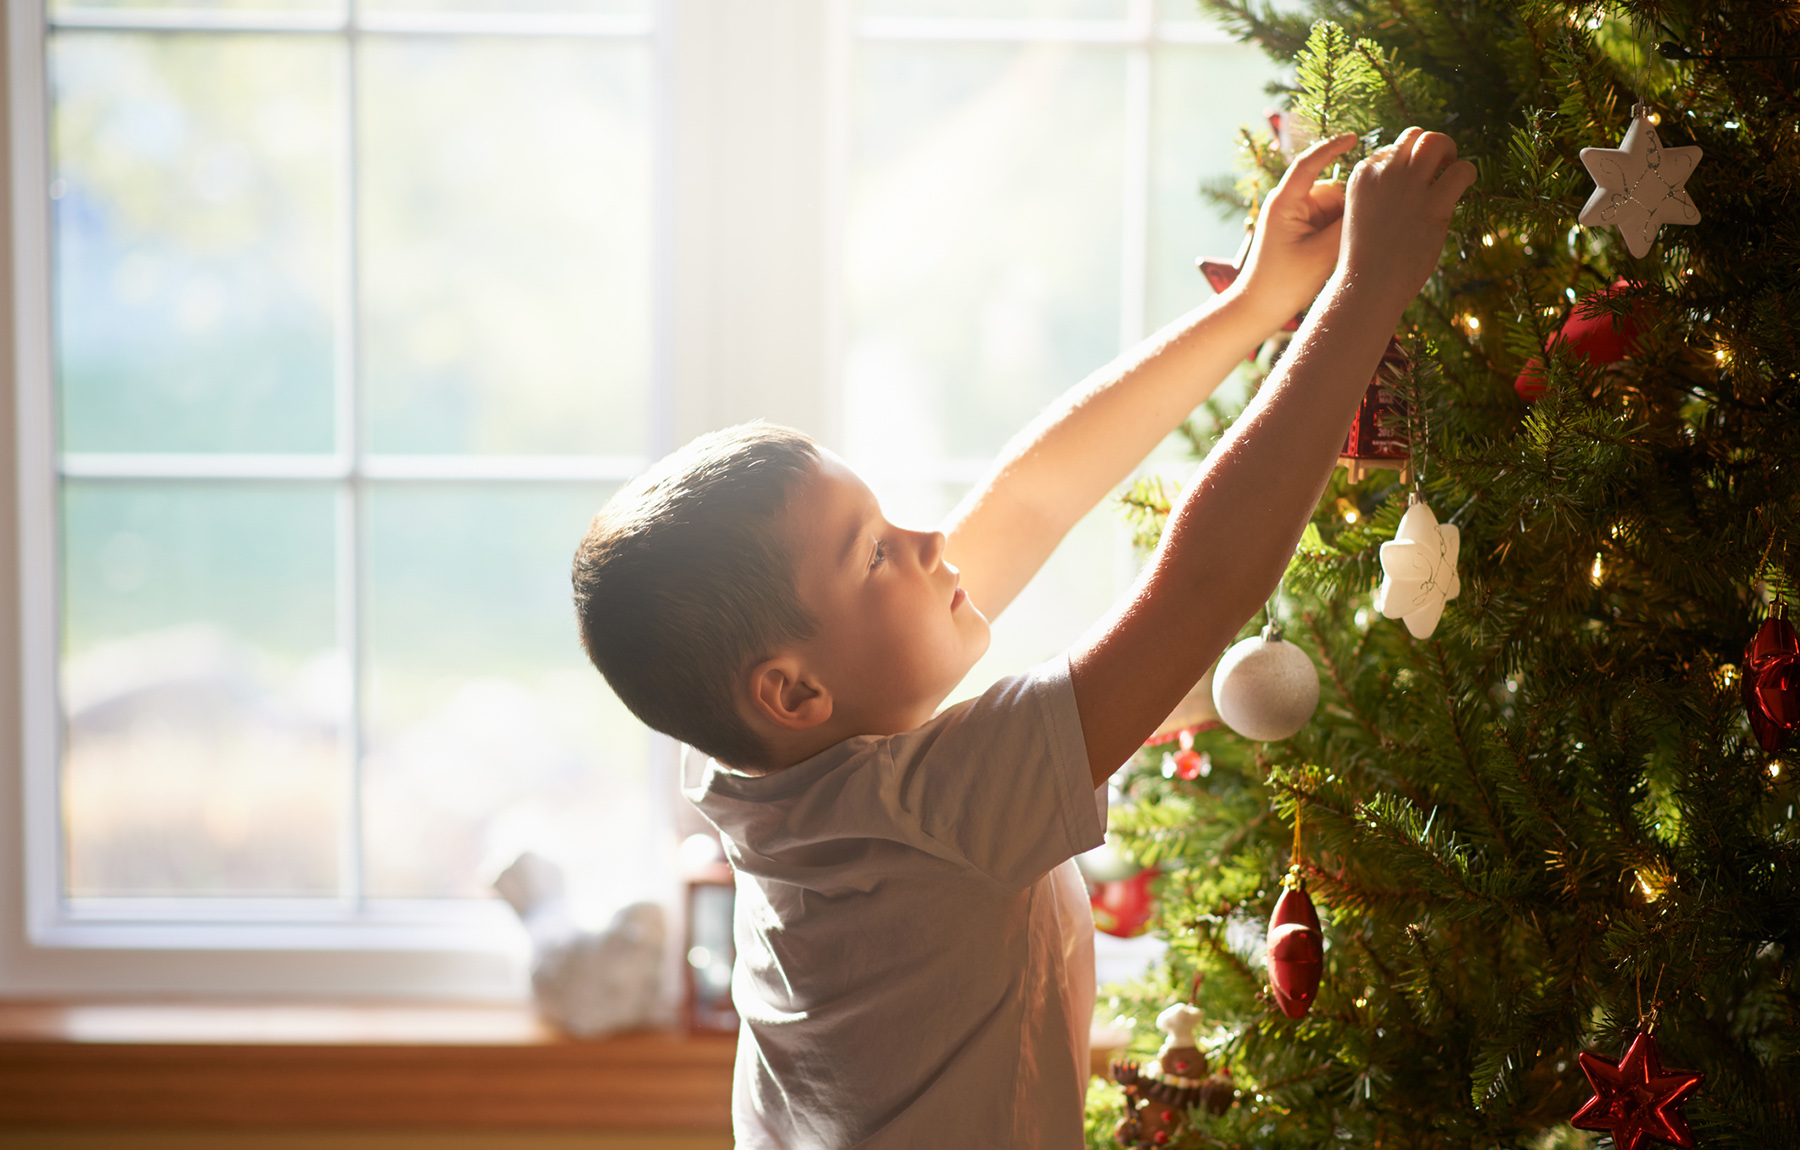 A Leader's Top Priority This Busy Holiday Season